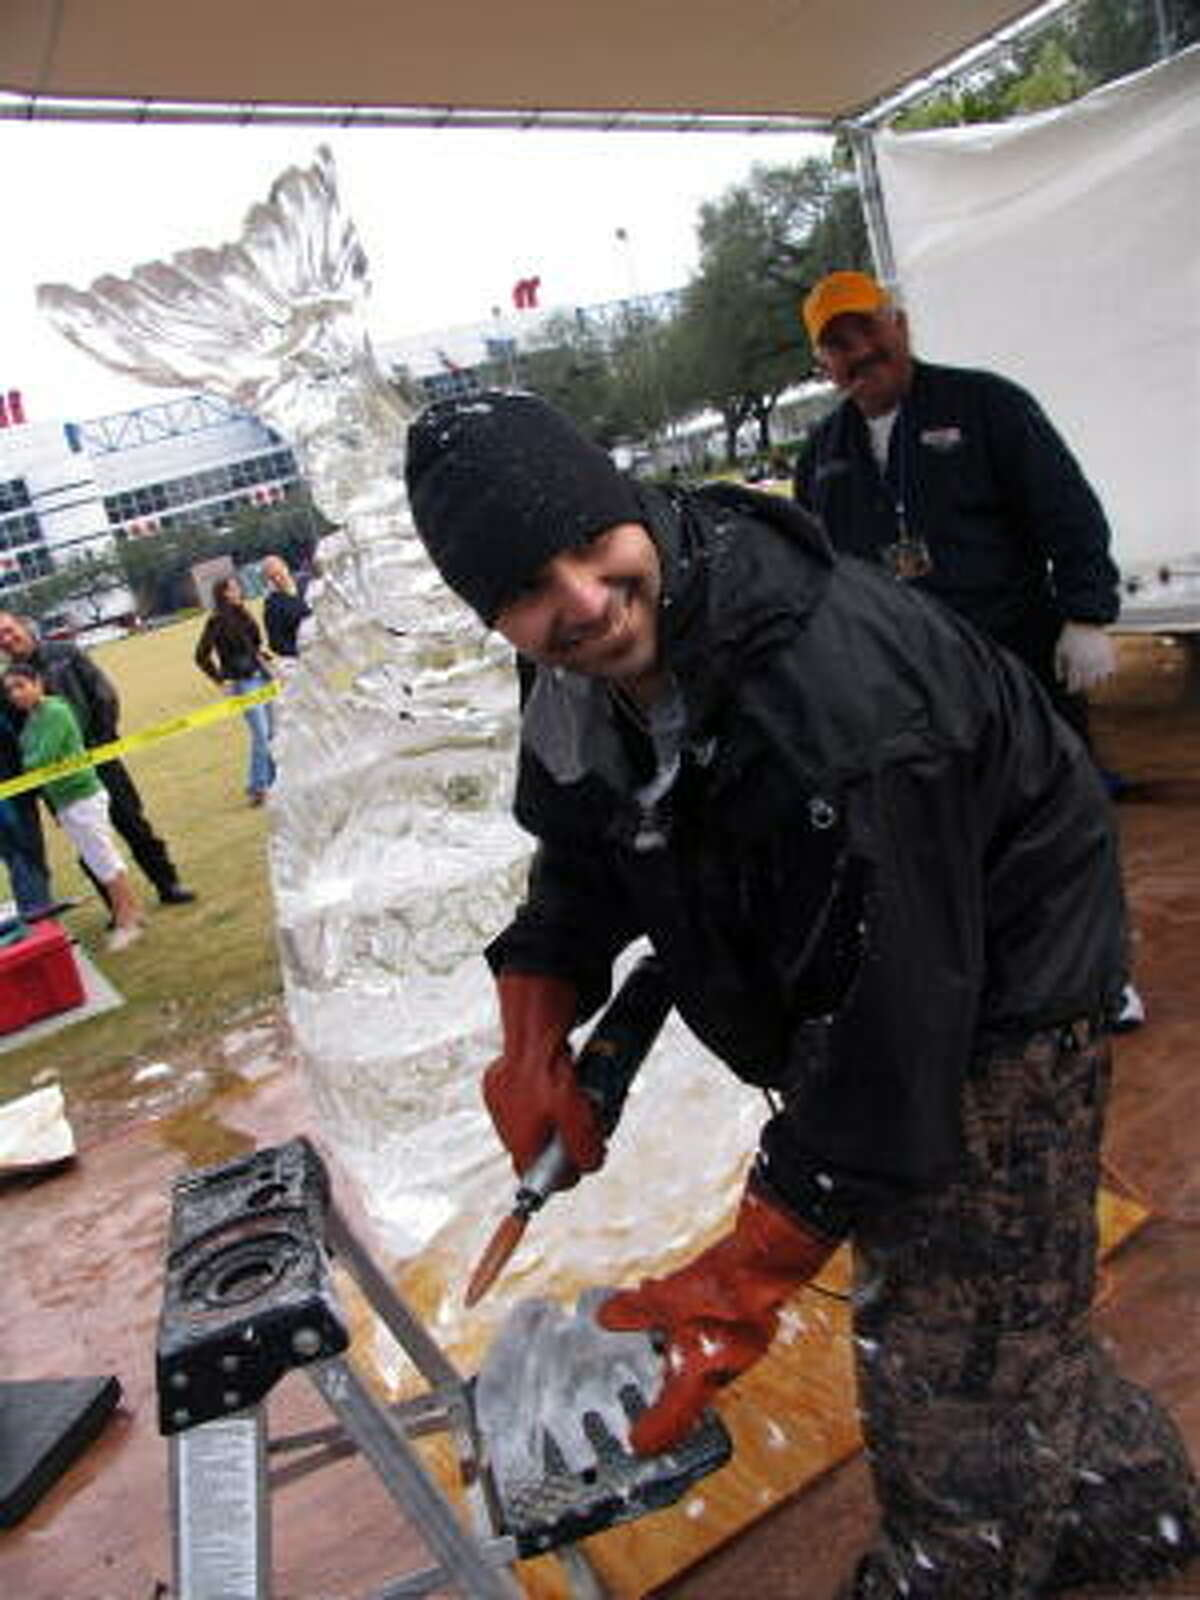 The Vegas Iceman gets down to business. He was one of seven ice-sculpting artists to take part in a competition at Discovery Green, located at 1500 McKinney.